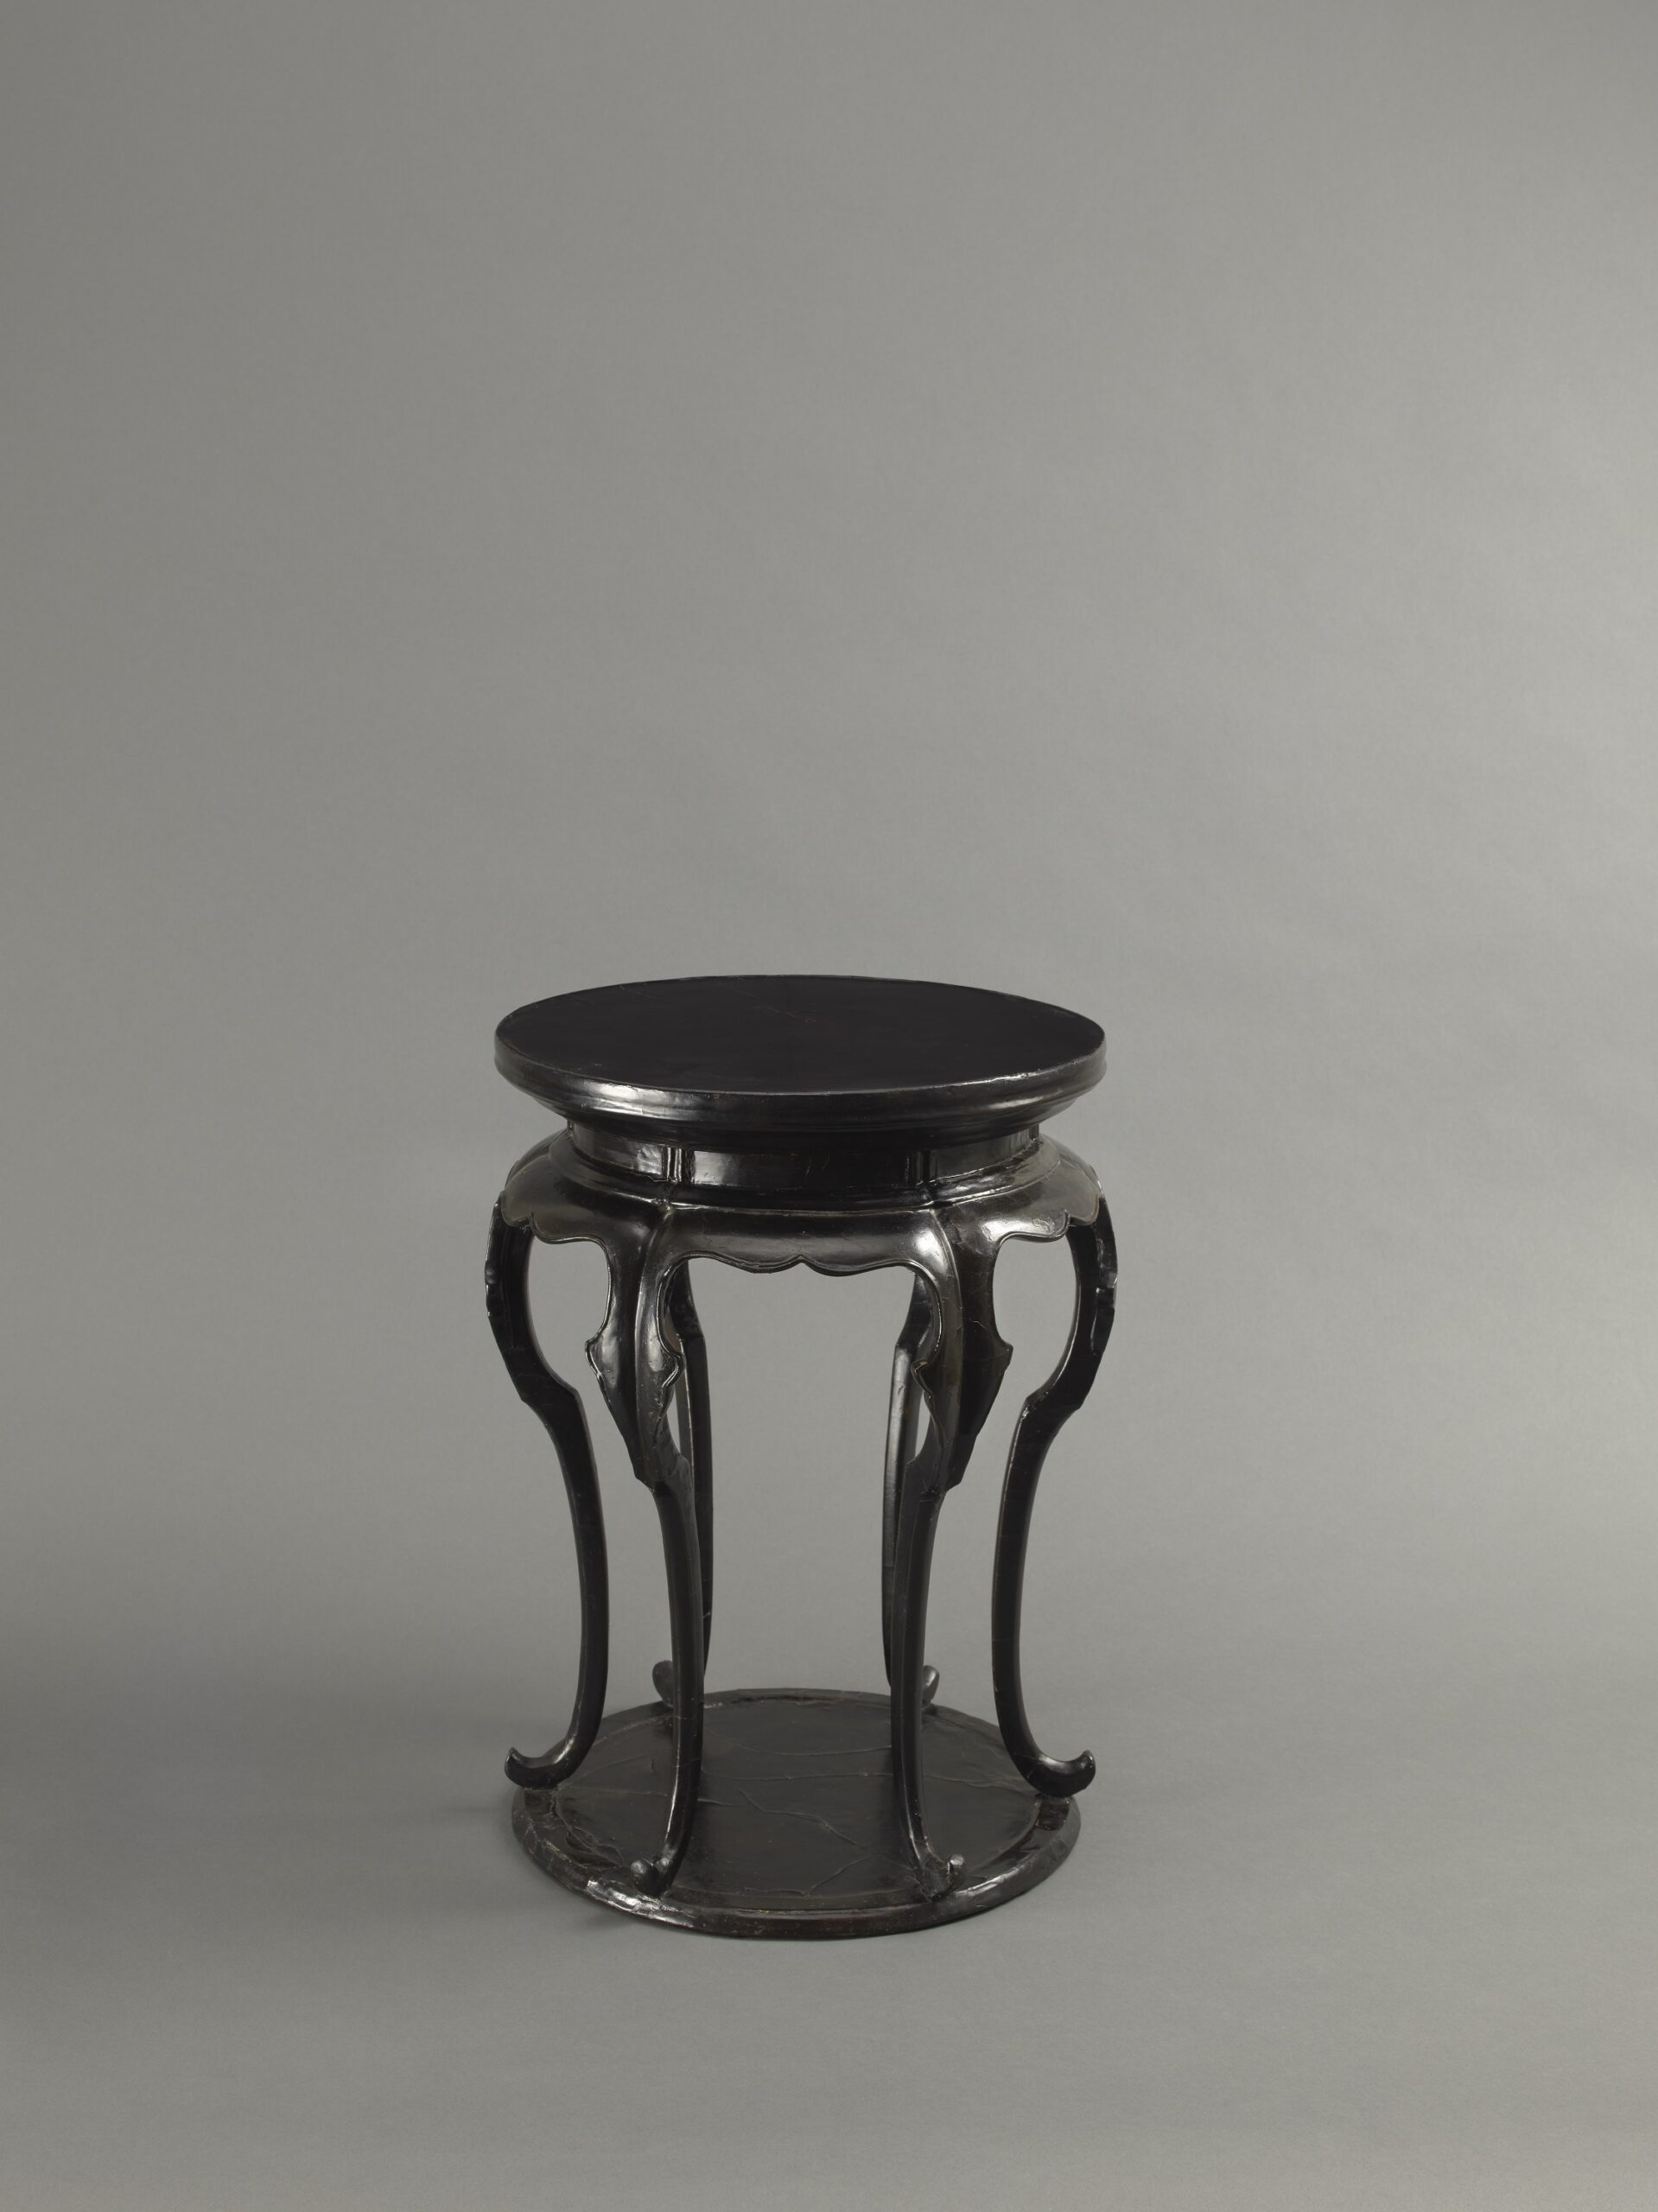 A BLACK LACQUERED WOOD SIX-LEGGED INCENSE STAND, XIANGJI Southern Song dynasty (1127-1279) or early Yuan dynasty (1279-1368) Height: 39 cm, 15 ⅜ inches 南宋至元早期 黑漆高束腰六足圓香几 高39釐米